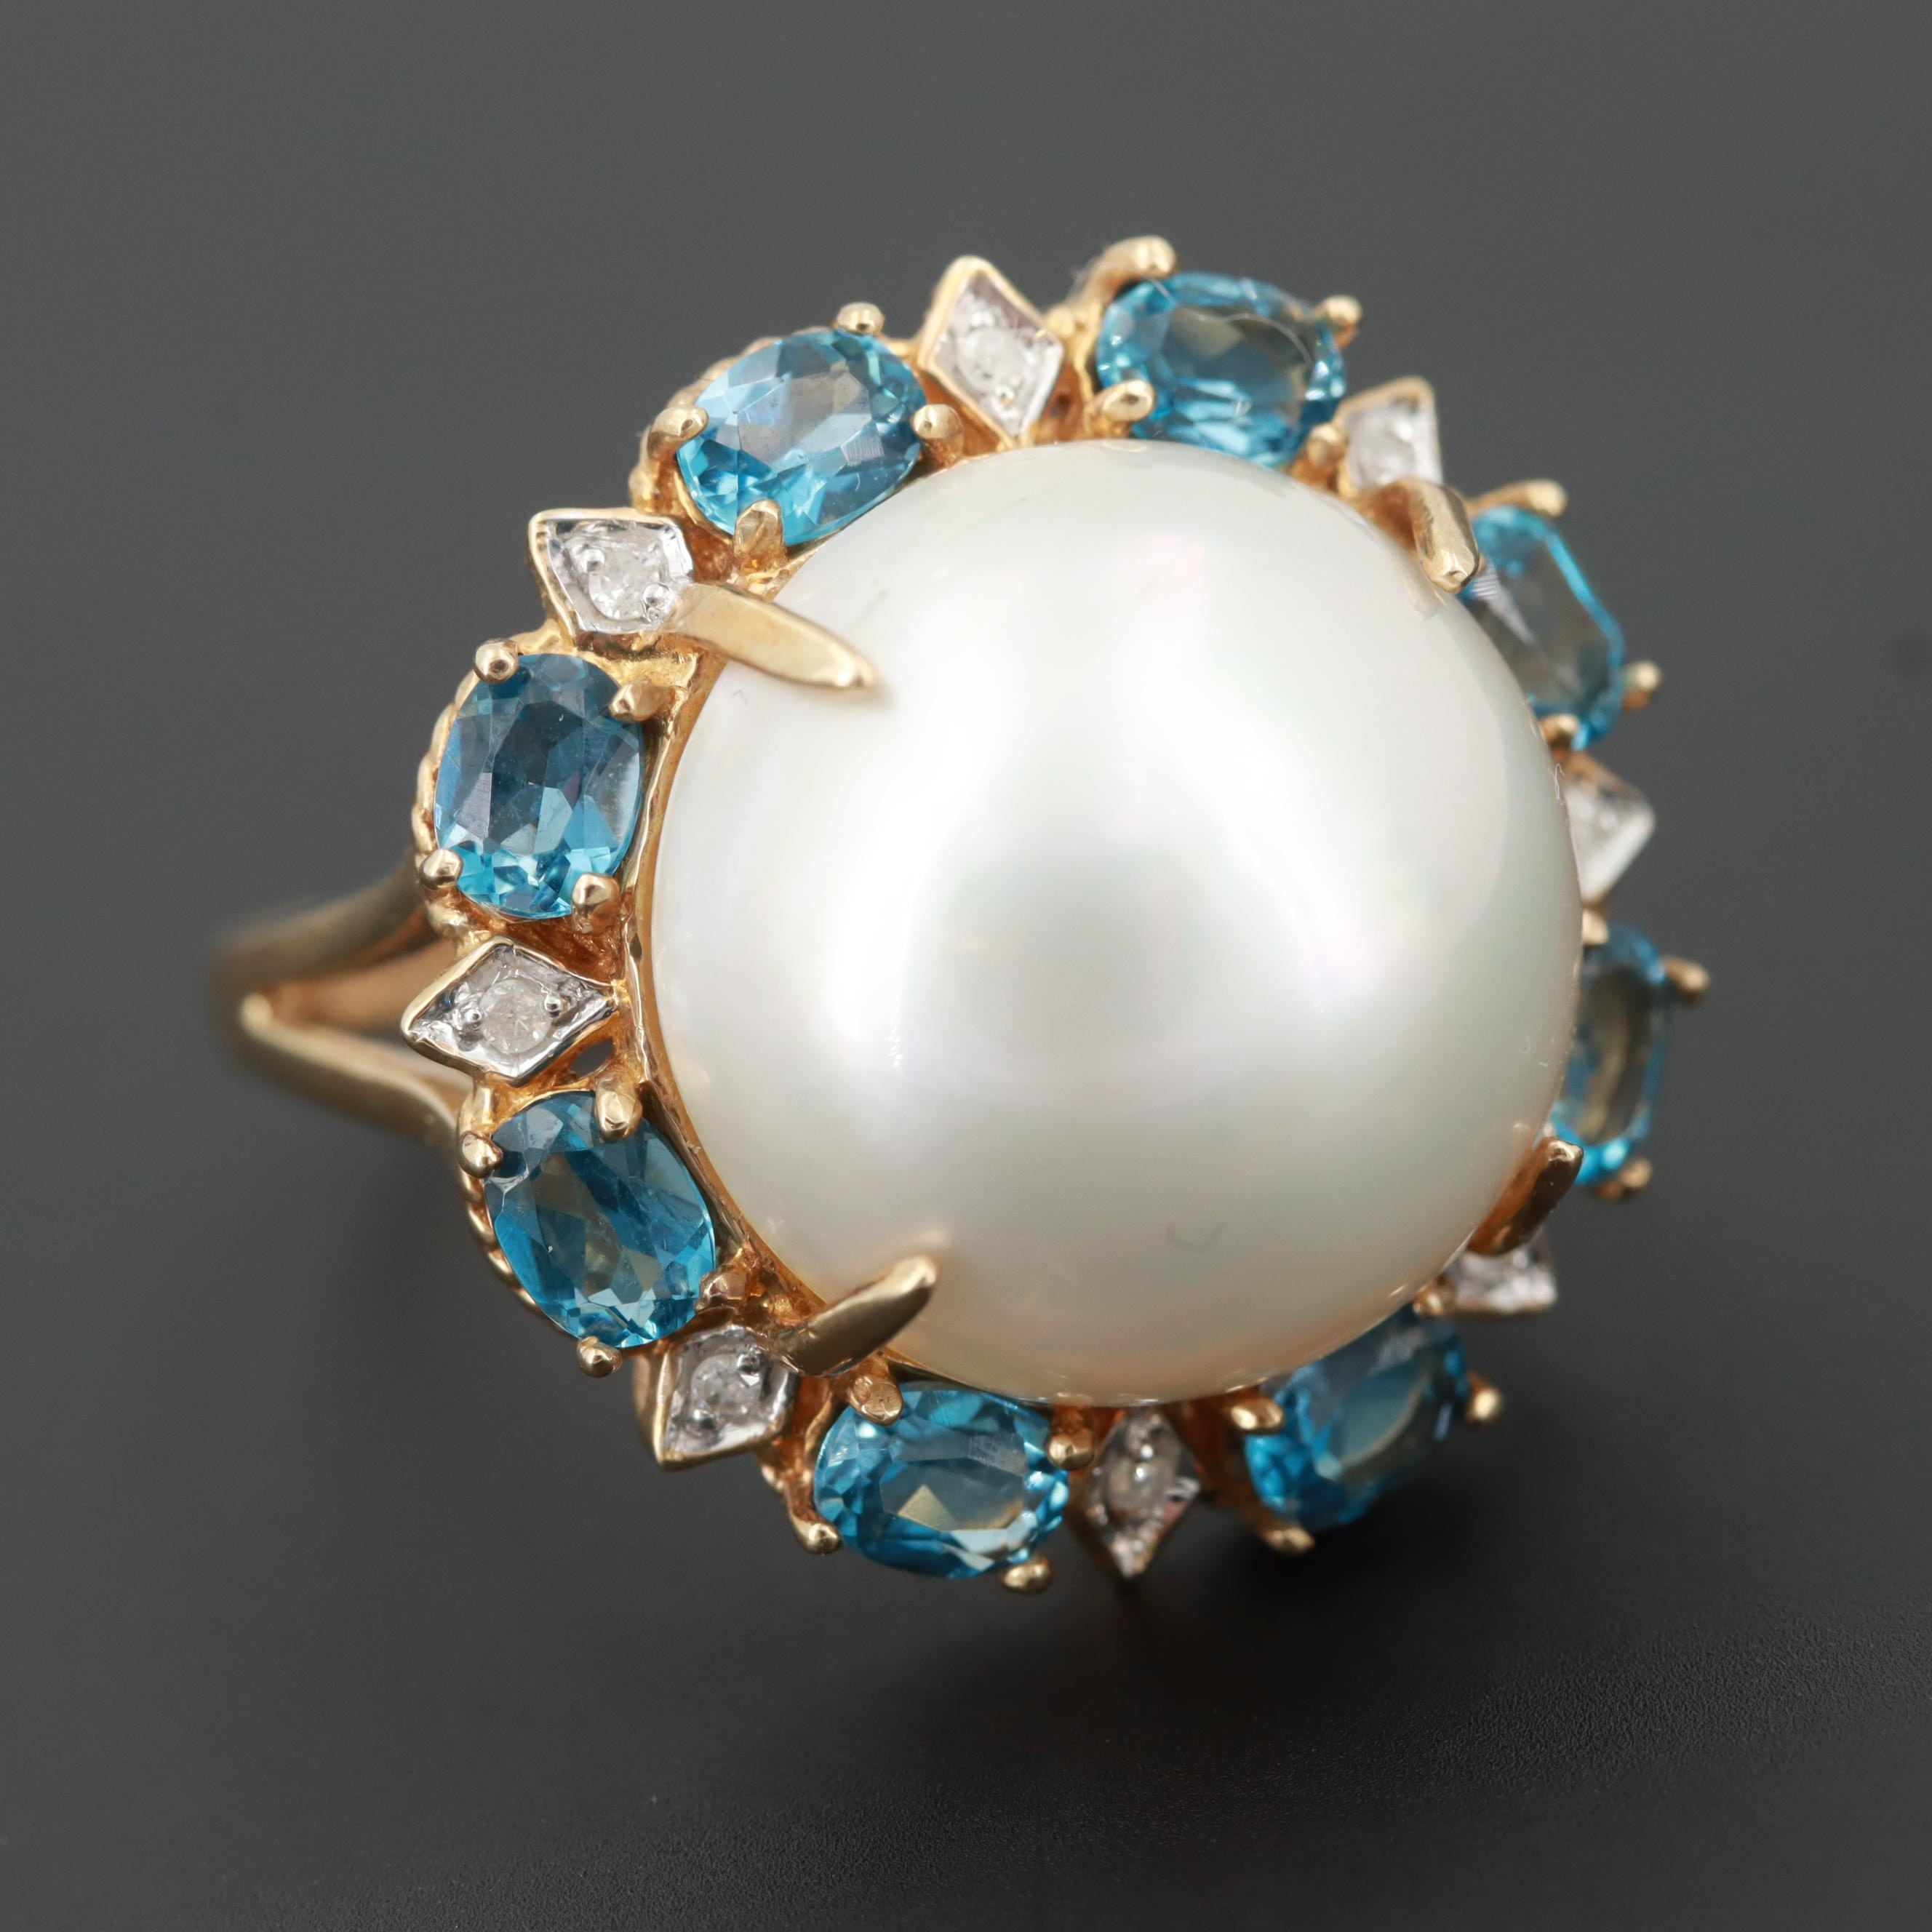 10K Yellow Gold Cultured Pearl, Blue Topaz and Diamond Ring